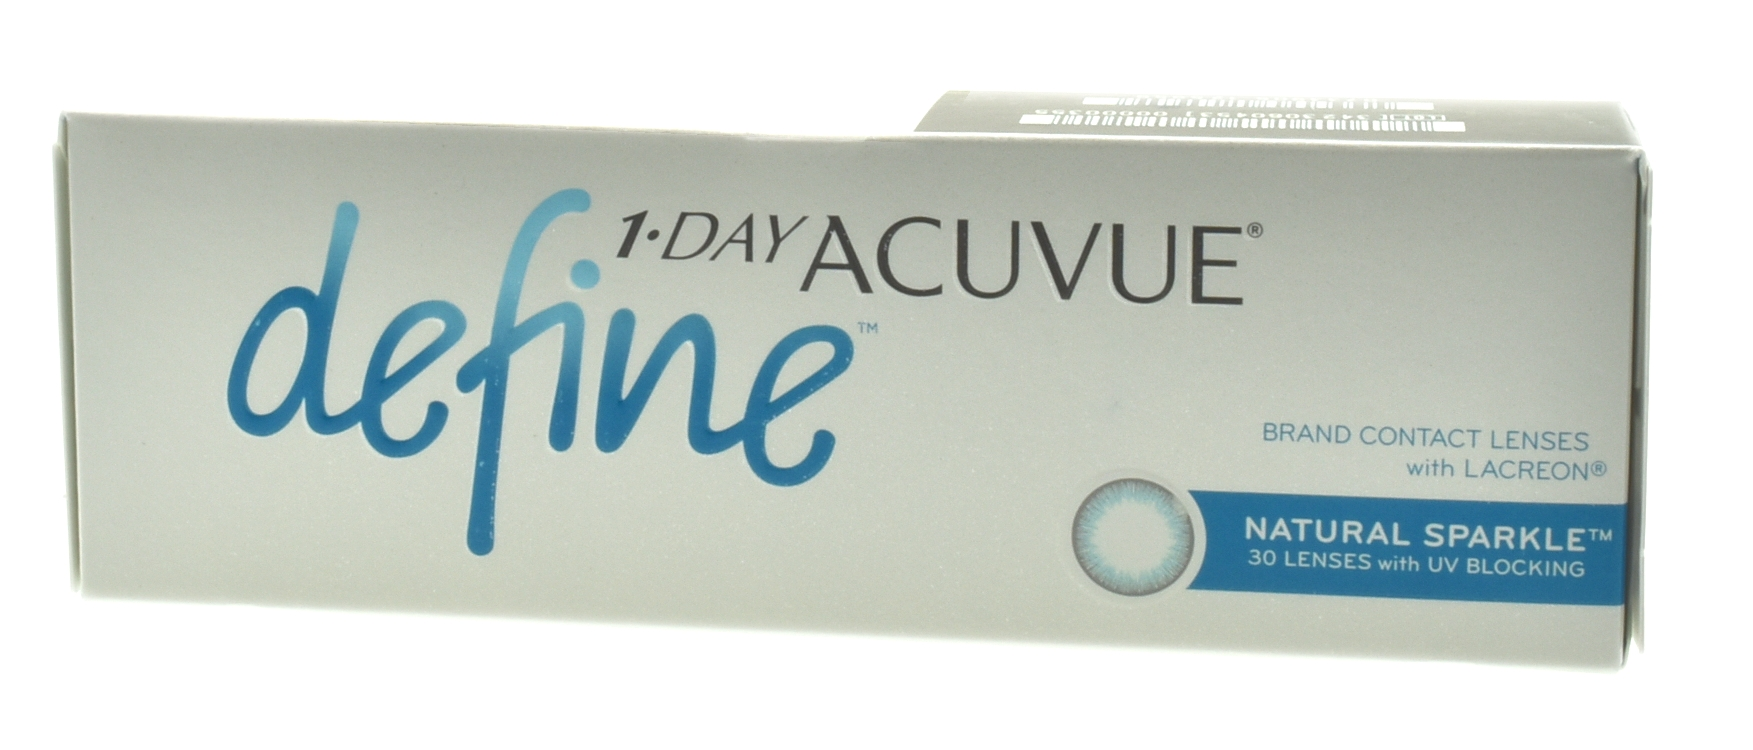 1-DAY Acuvue Define Sparkle 30pk